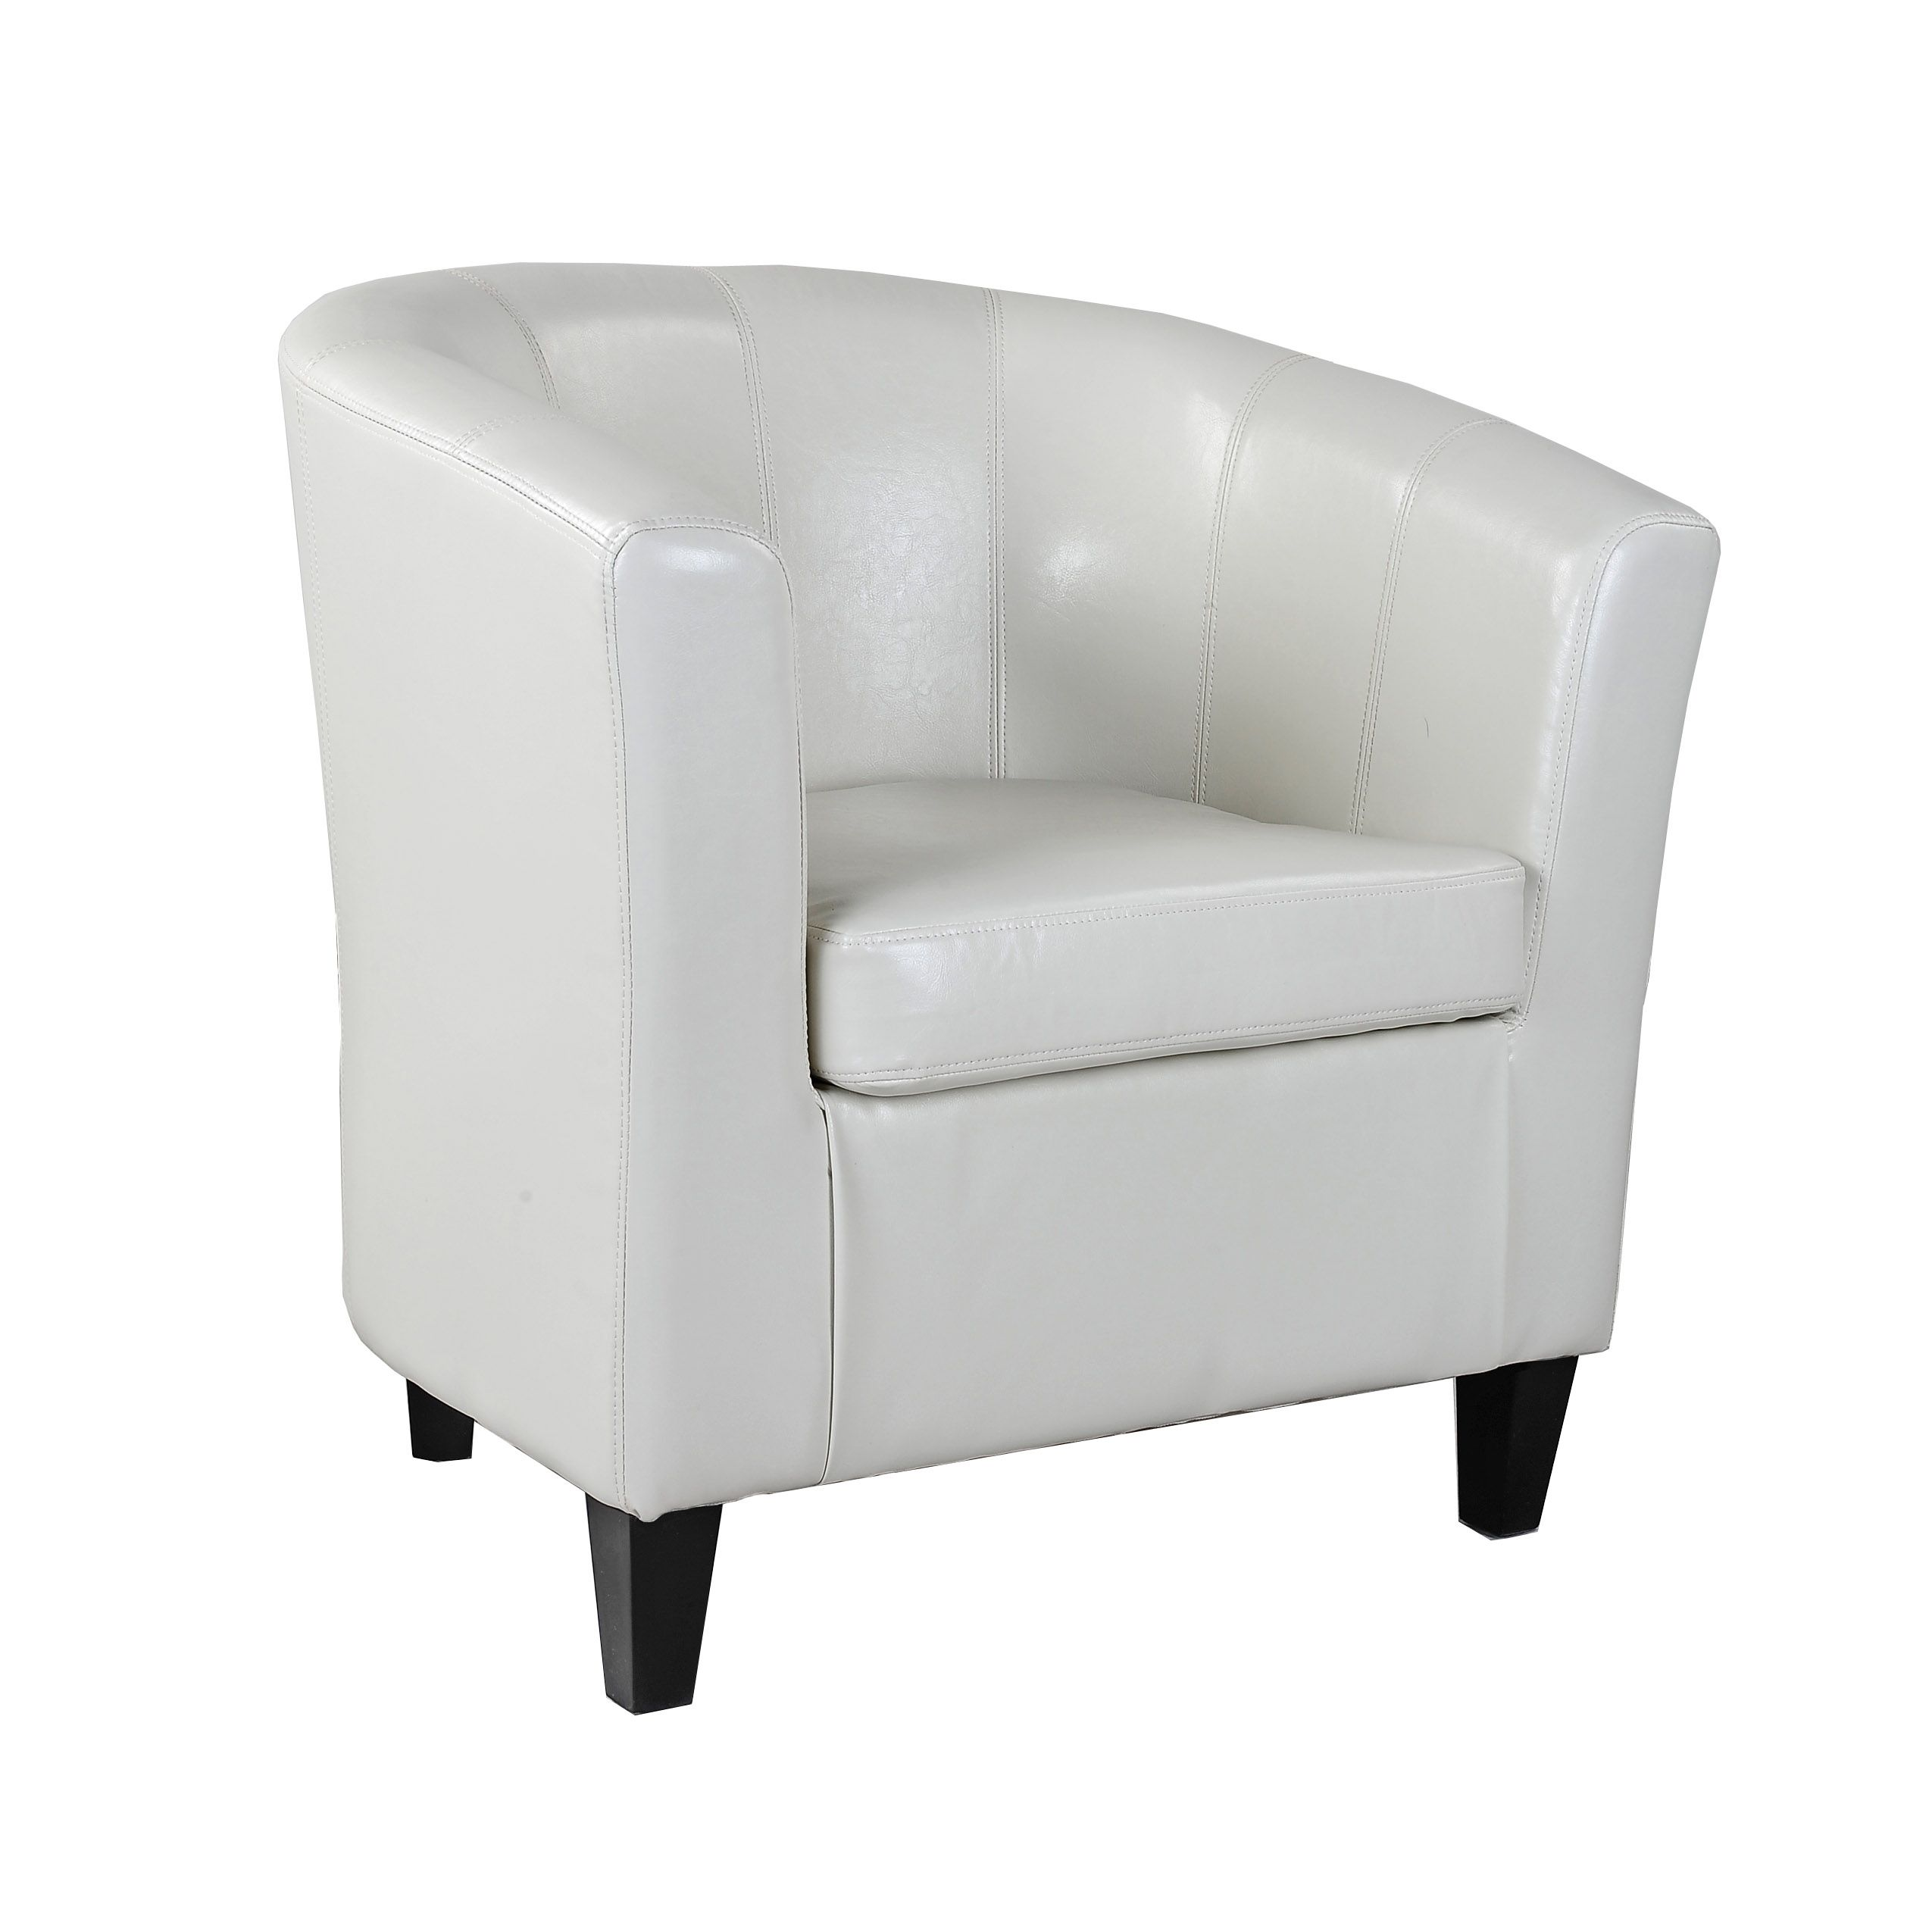 Corliving Antonio Tub Chair In Bonded Leather Cream White